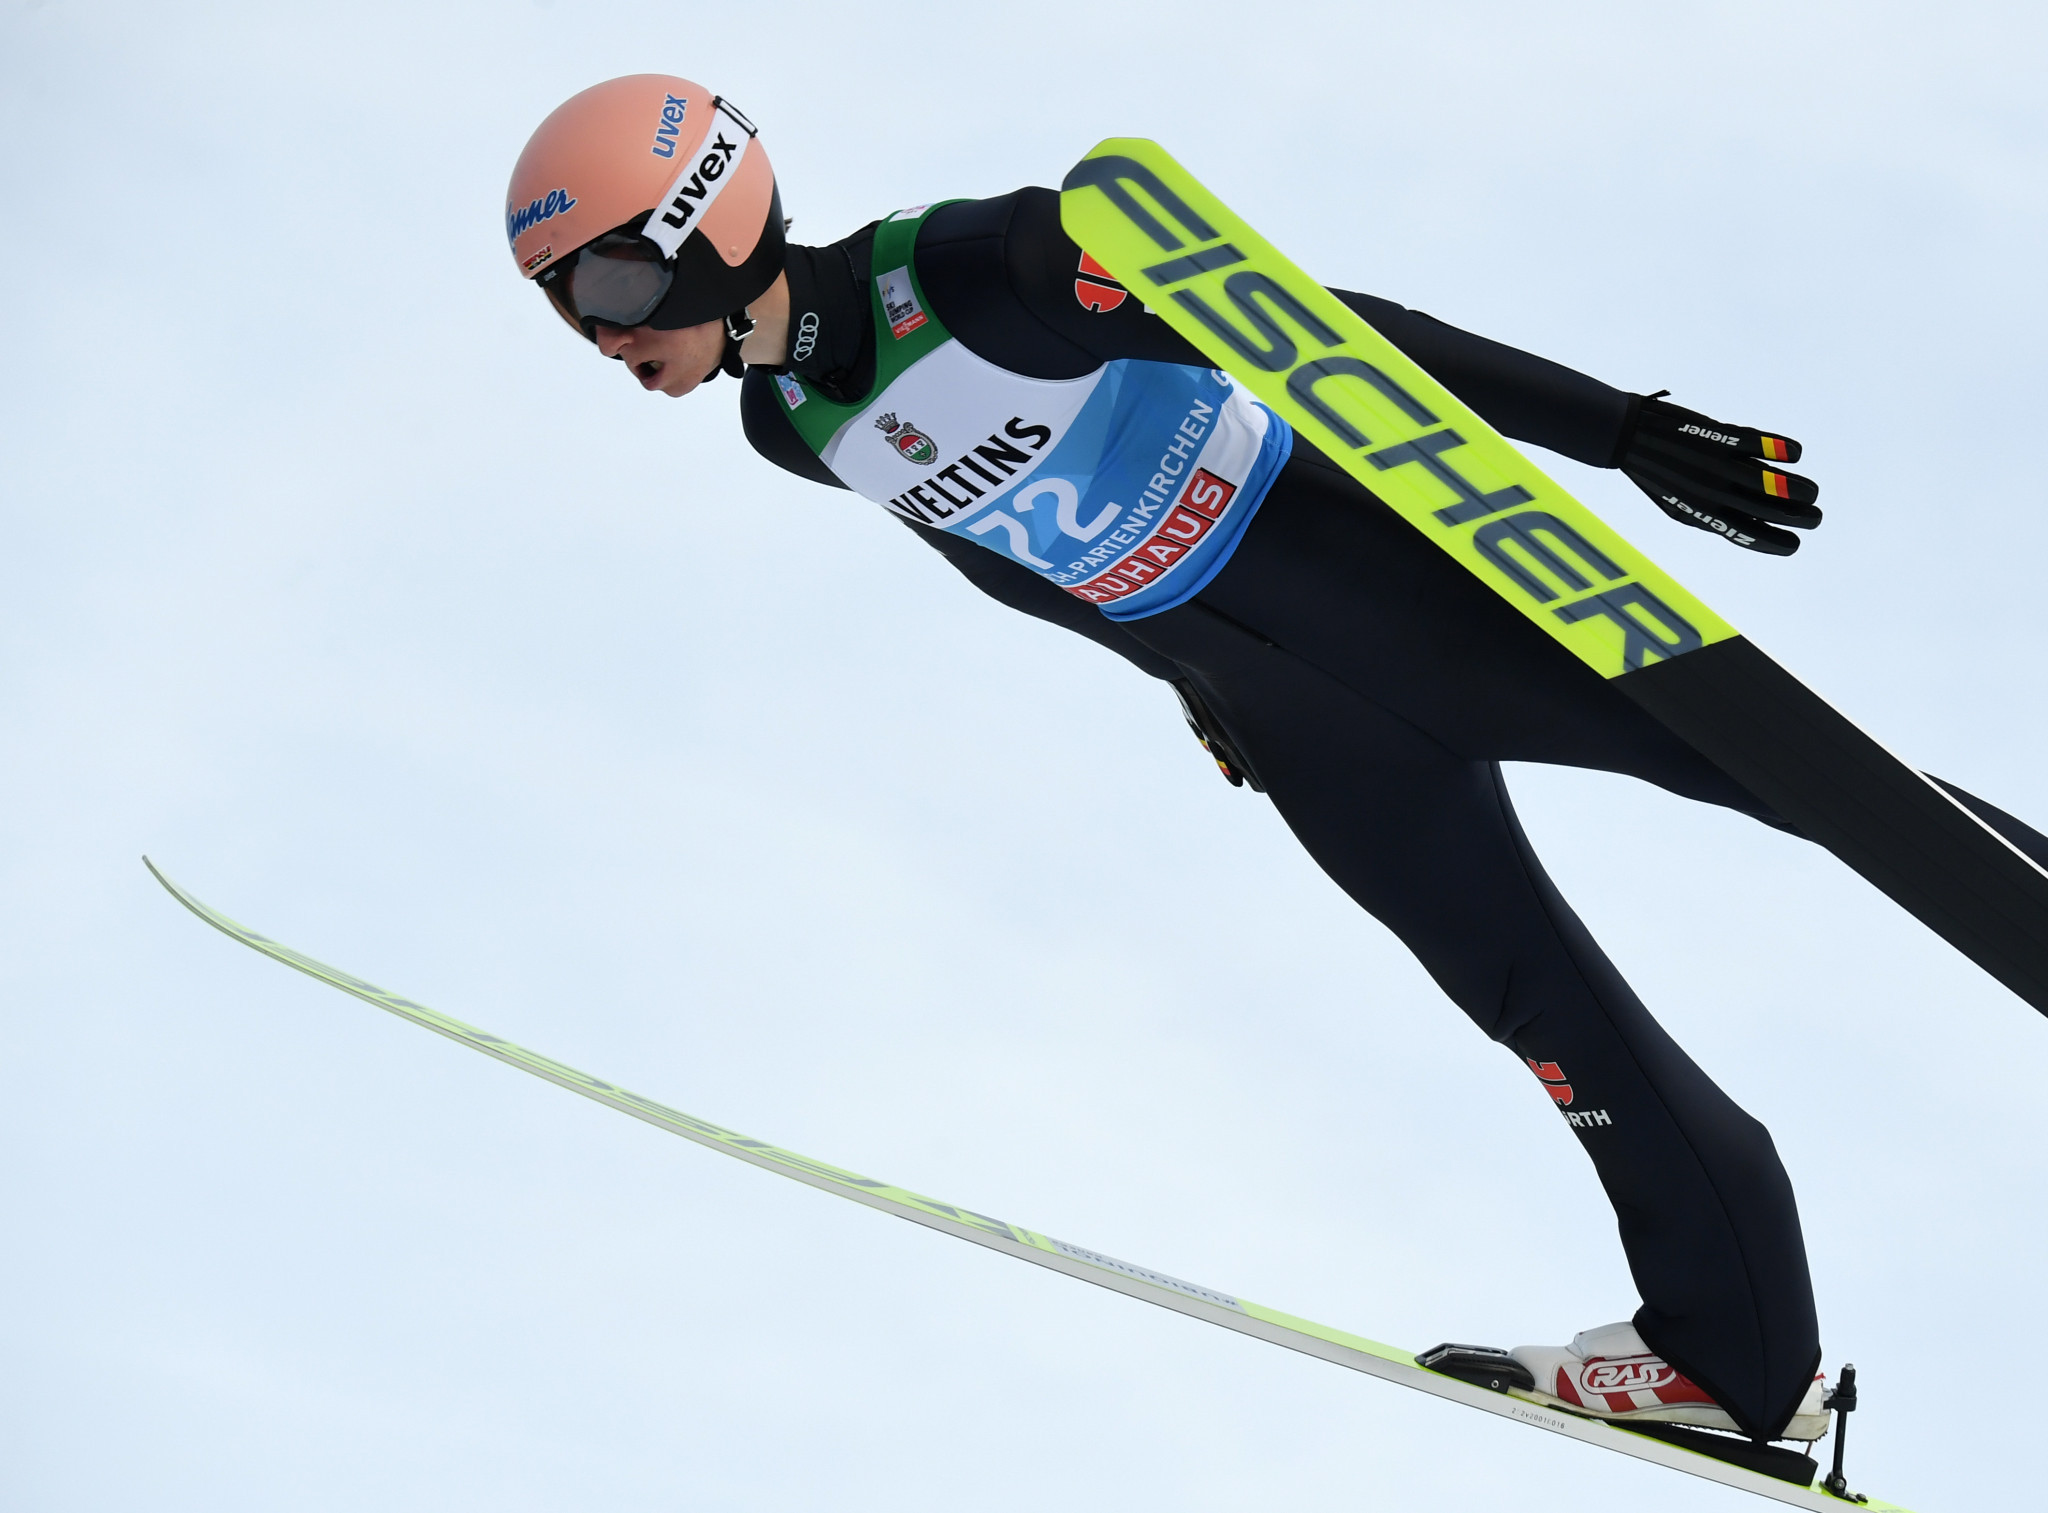 Geiger tops qualification at second Four Hills Tournament event